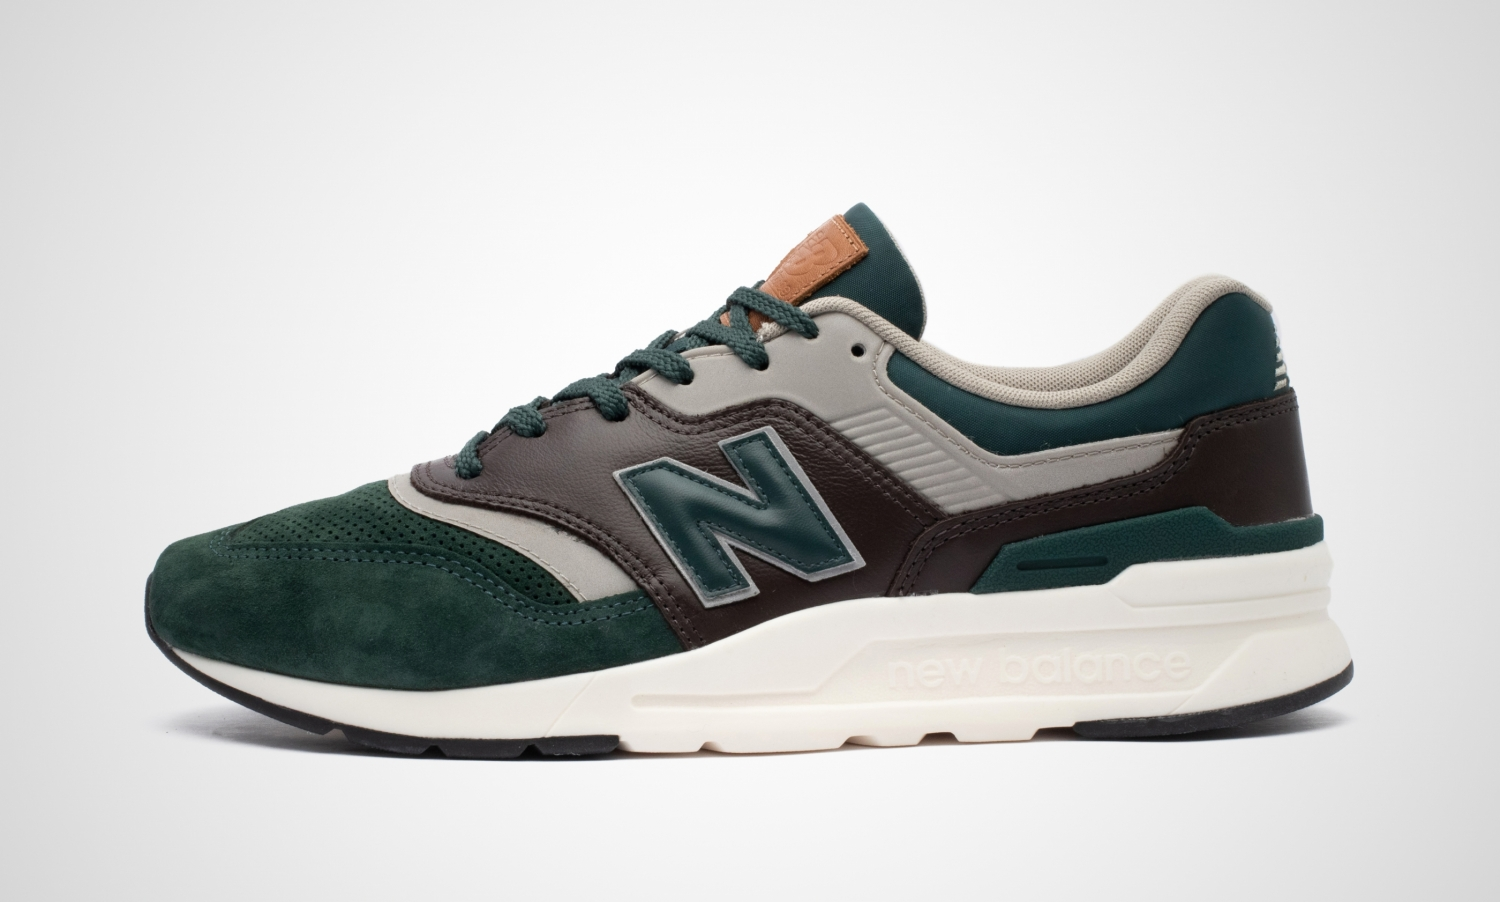 new balance cm997hxa grün · Sneakerkompass